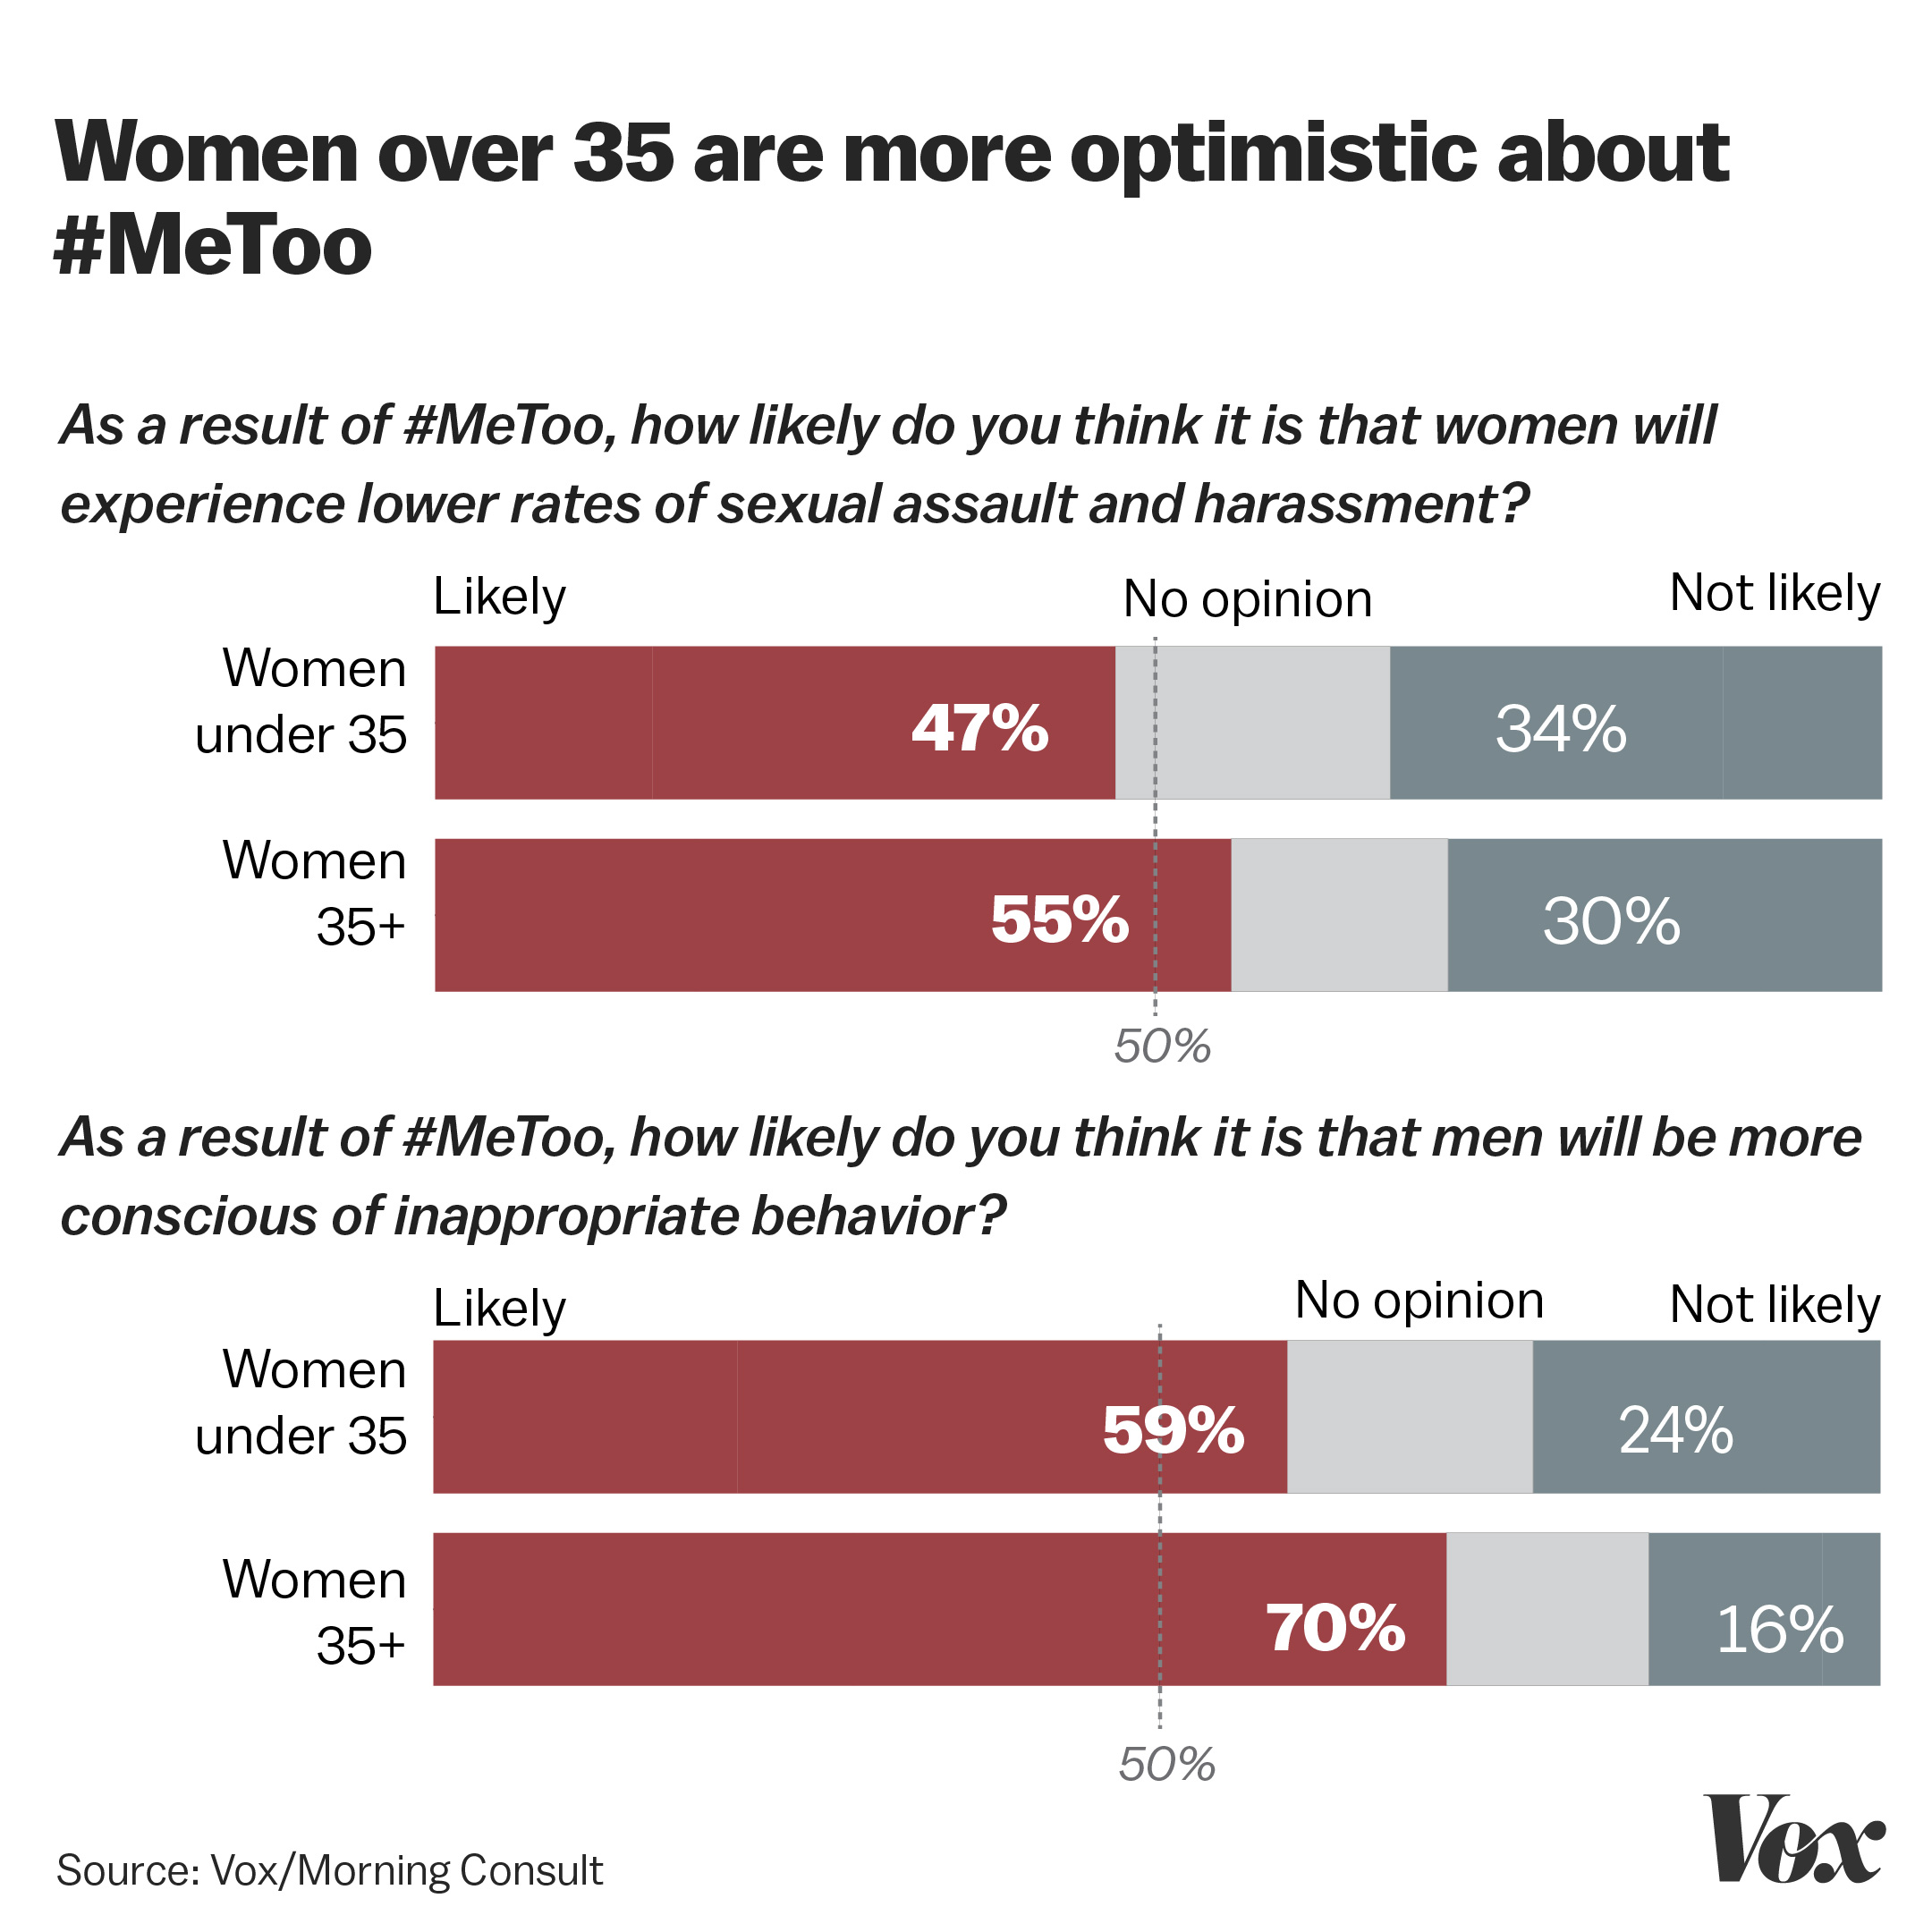 Chart comparing older and younger women's attitudes about potential positive outcomes of the #MeToo movement